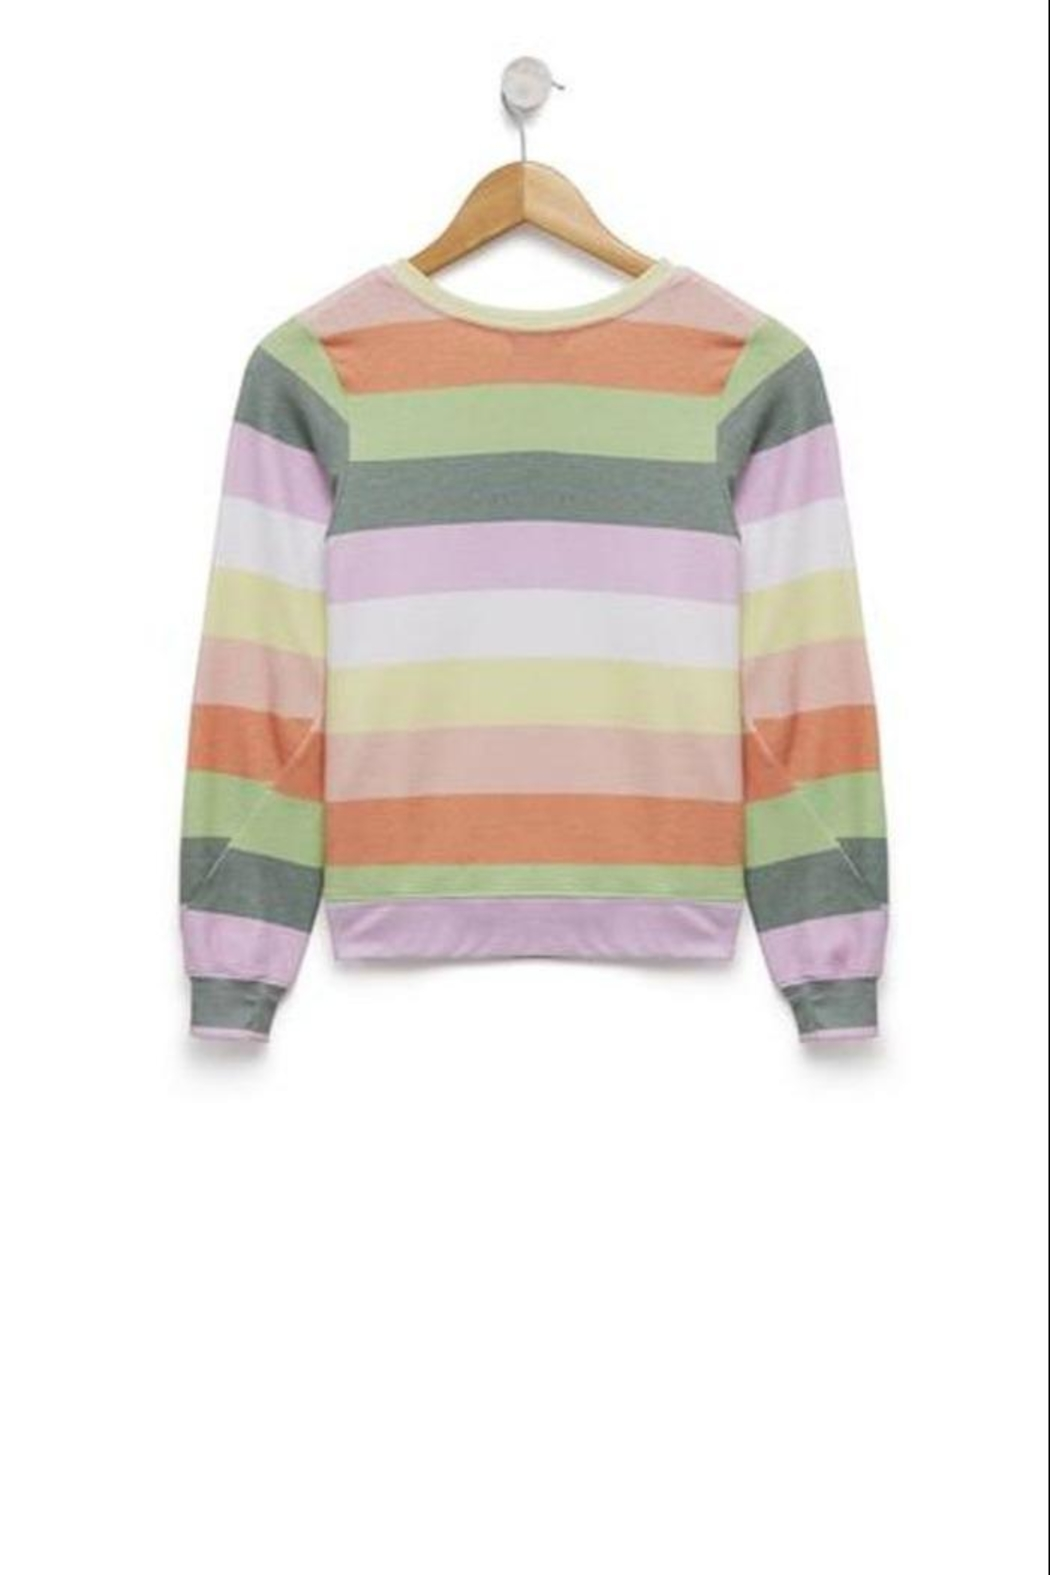 Wildfox Kids Sorbet Stripes Sweatshirt - Main Image